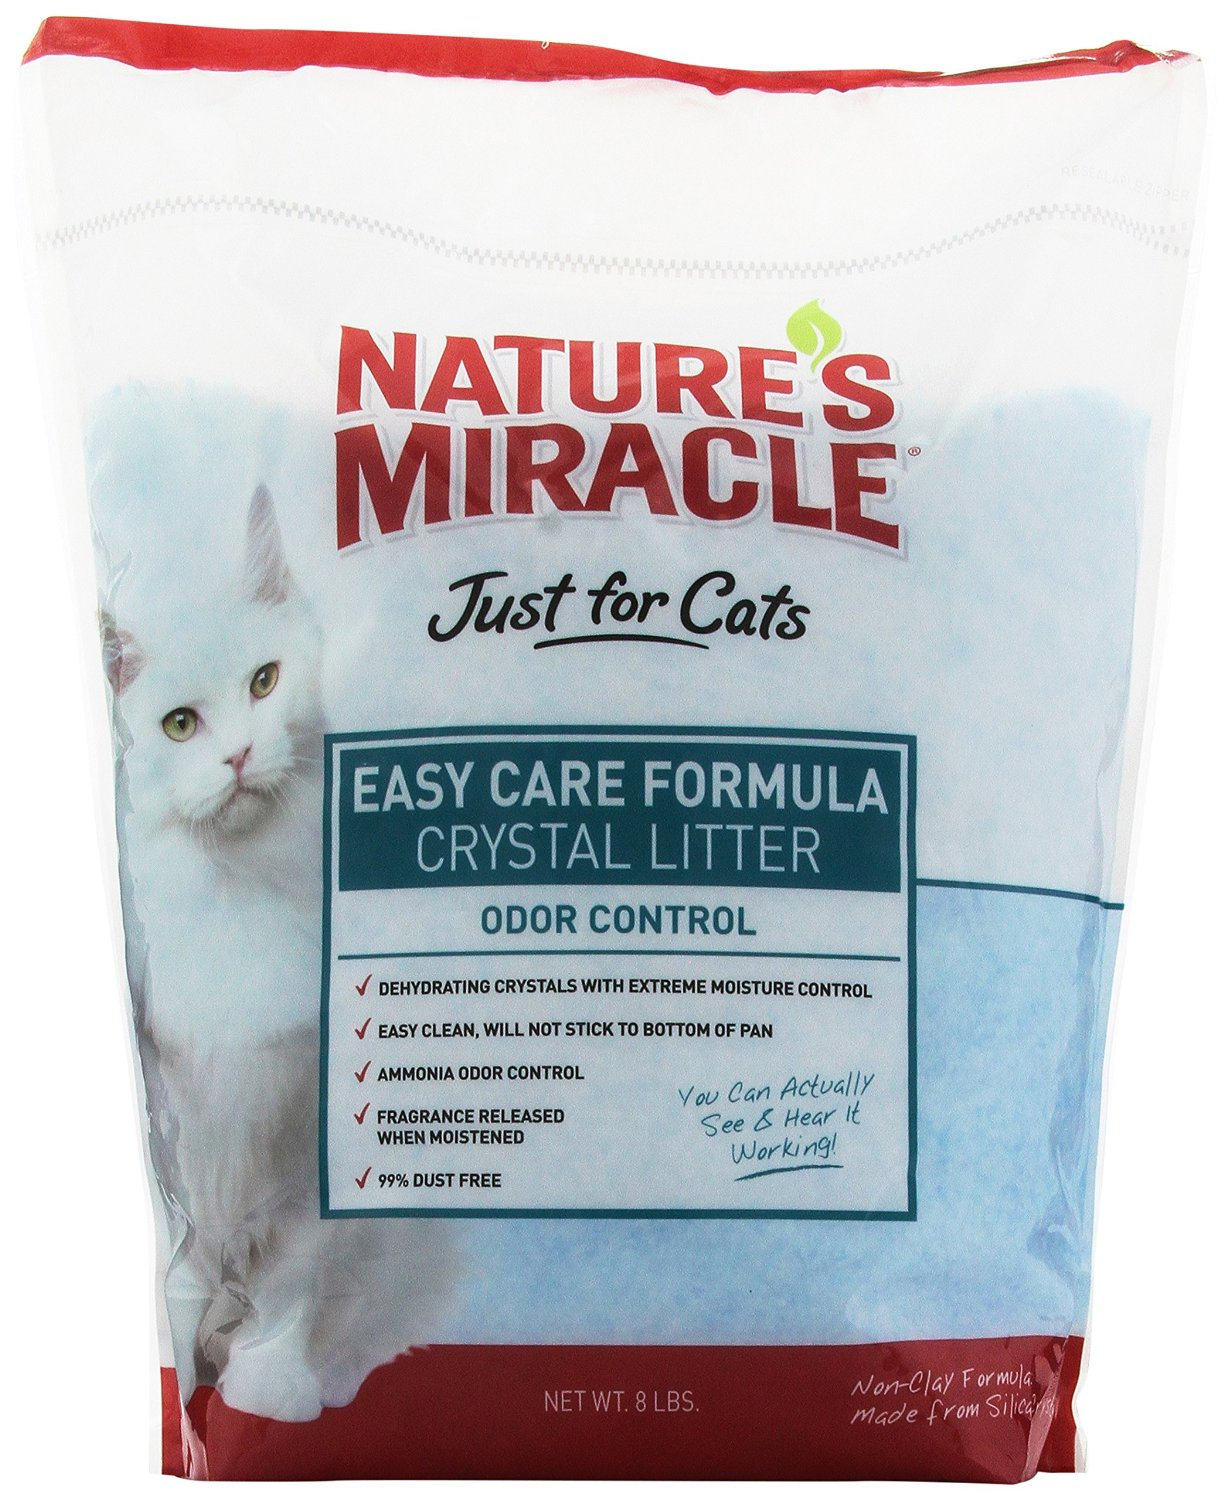 Nature's Miracle Just for Cats Easy Care Crystal Litter, 8-Pound